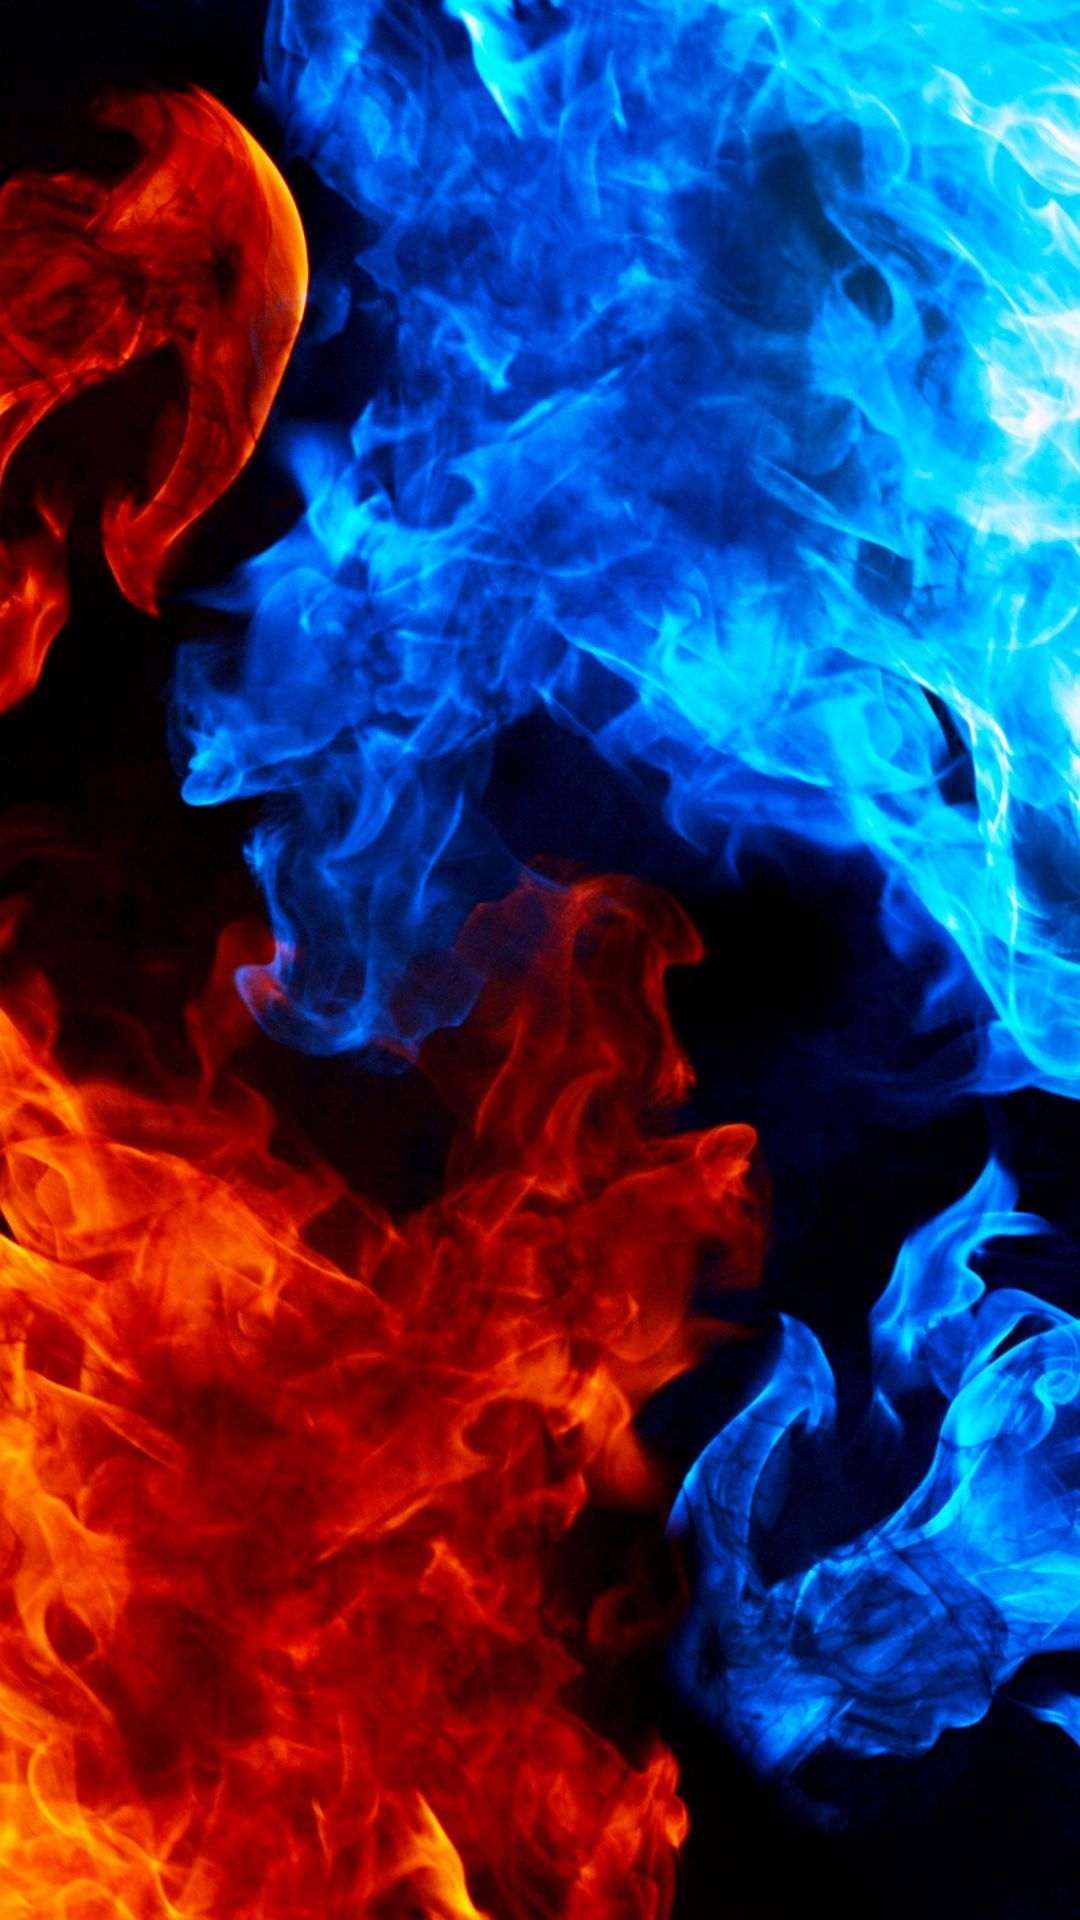 Abstract Red White And Blue Wallpaper Red And Black Wallpaper Red Wallpaper Smoke Wallpaper